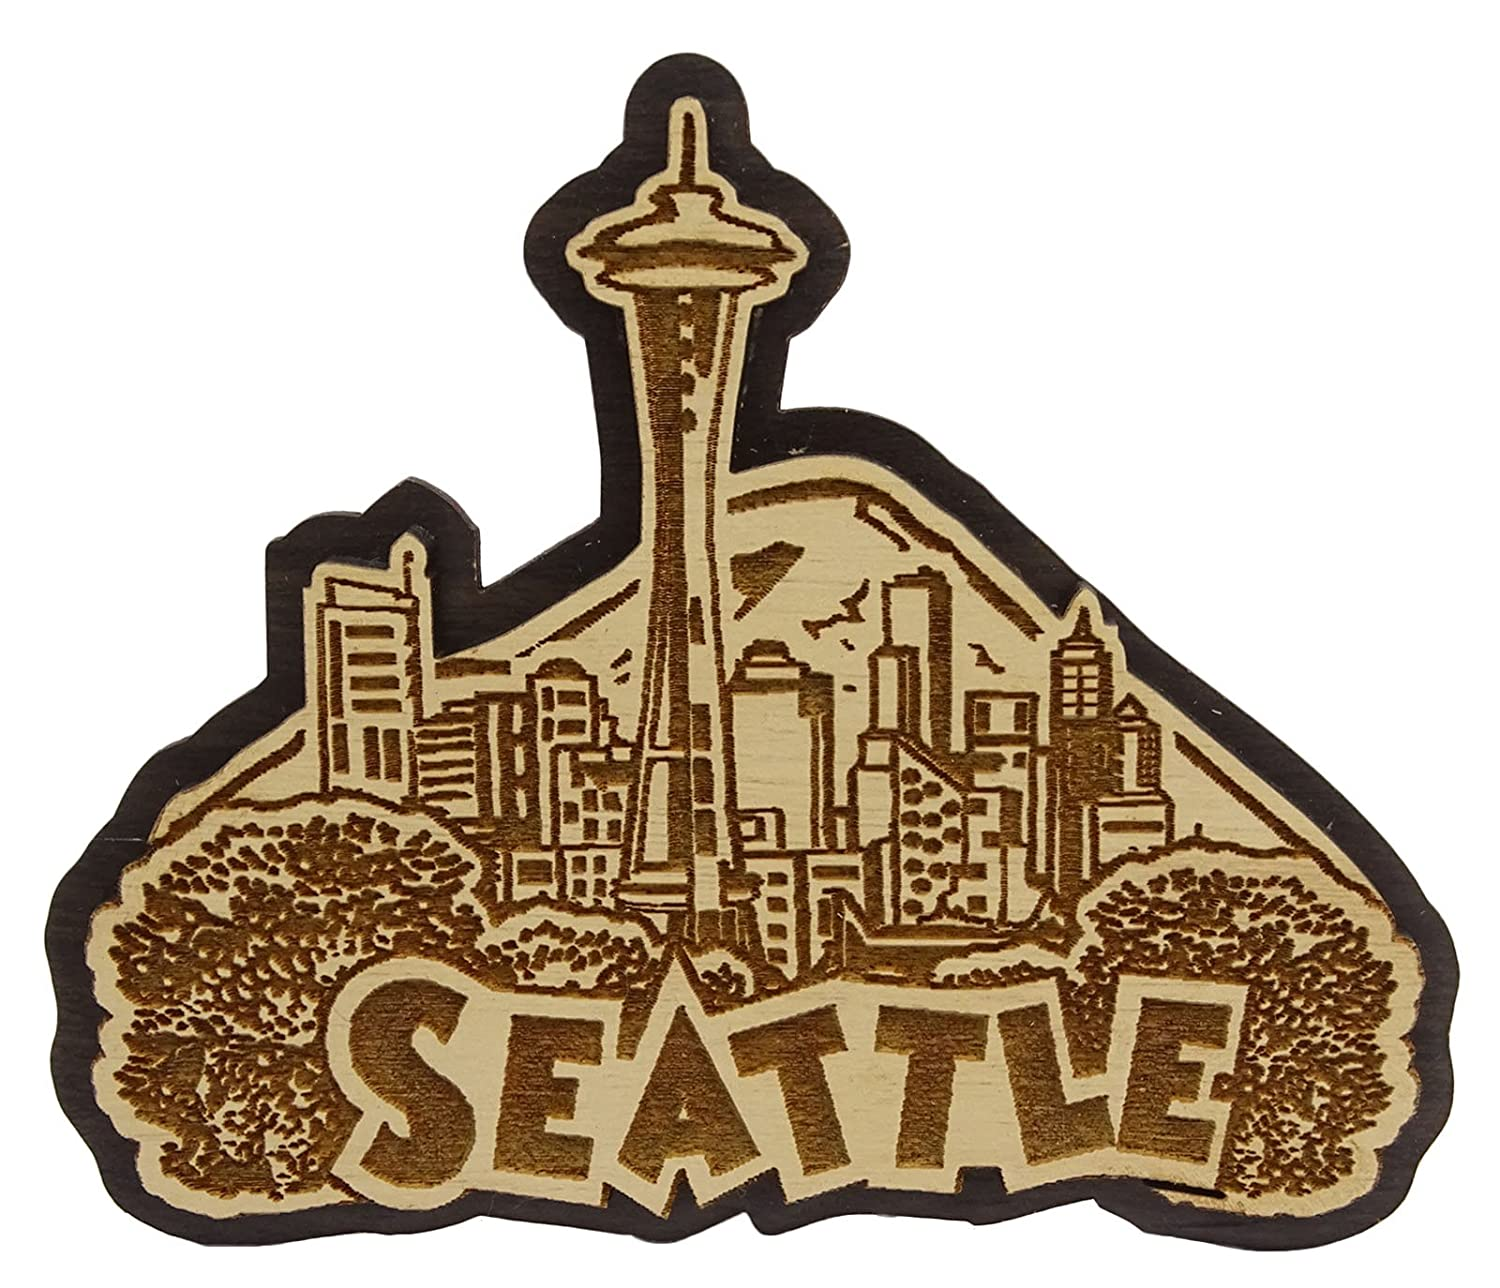 Seattle Wood Engraved Fridge Magnet Souvenir Gift